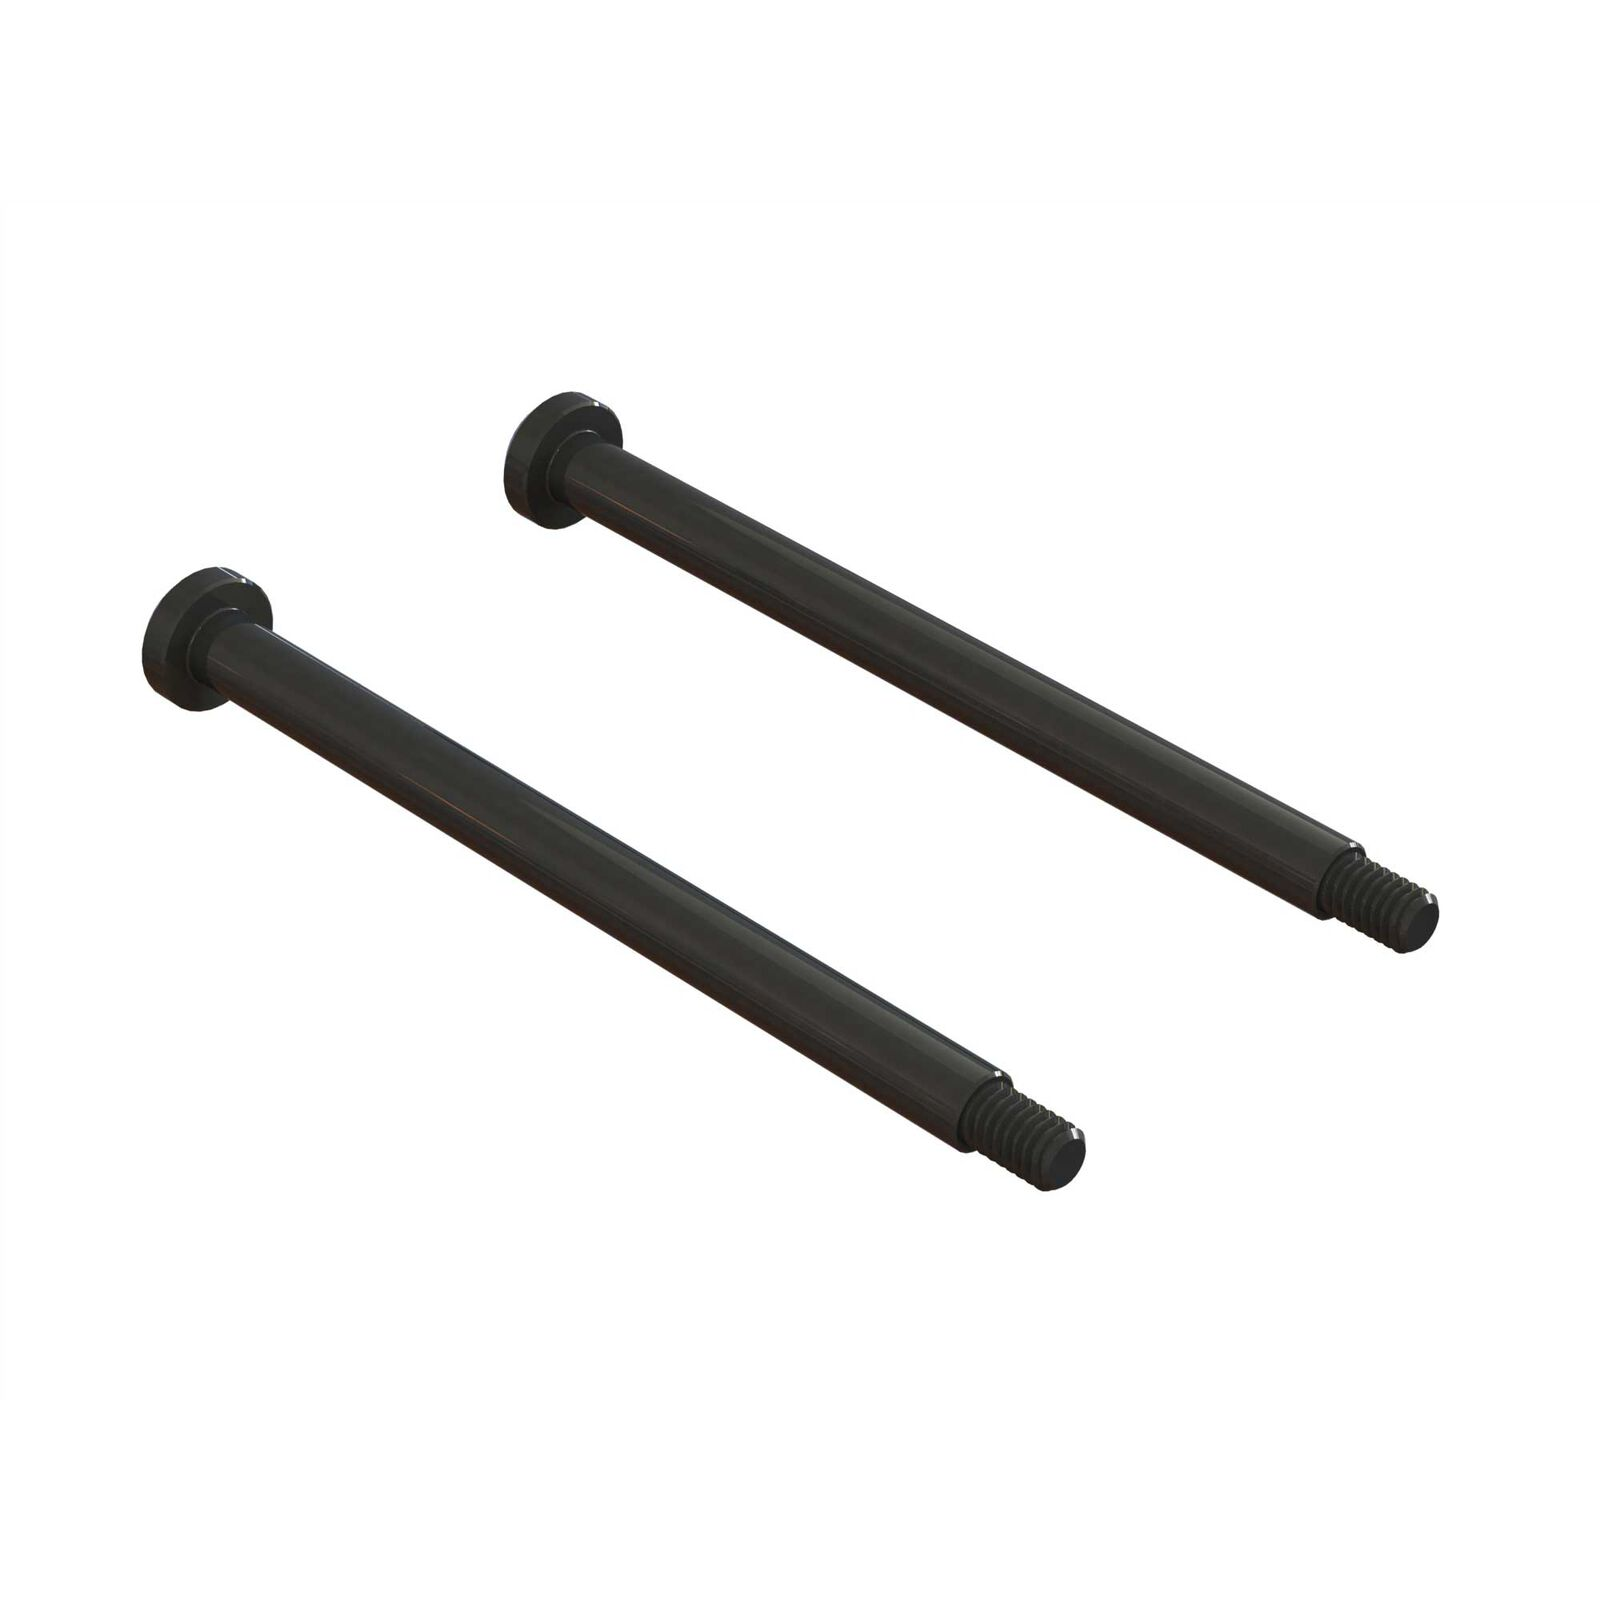 HD Threaded Hinge Pin (2)